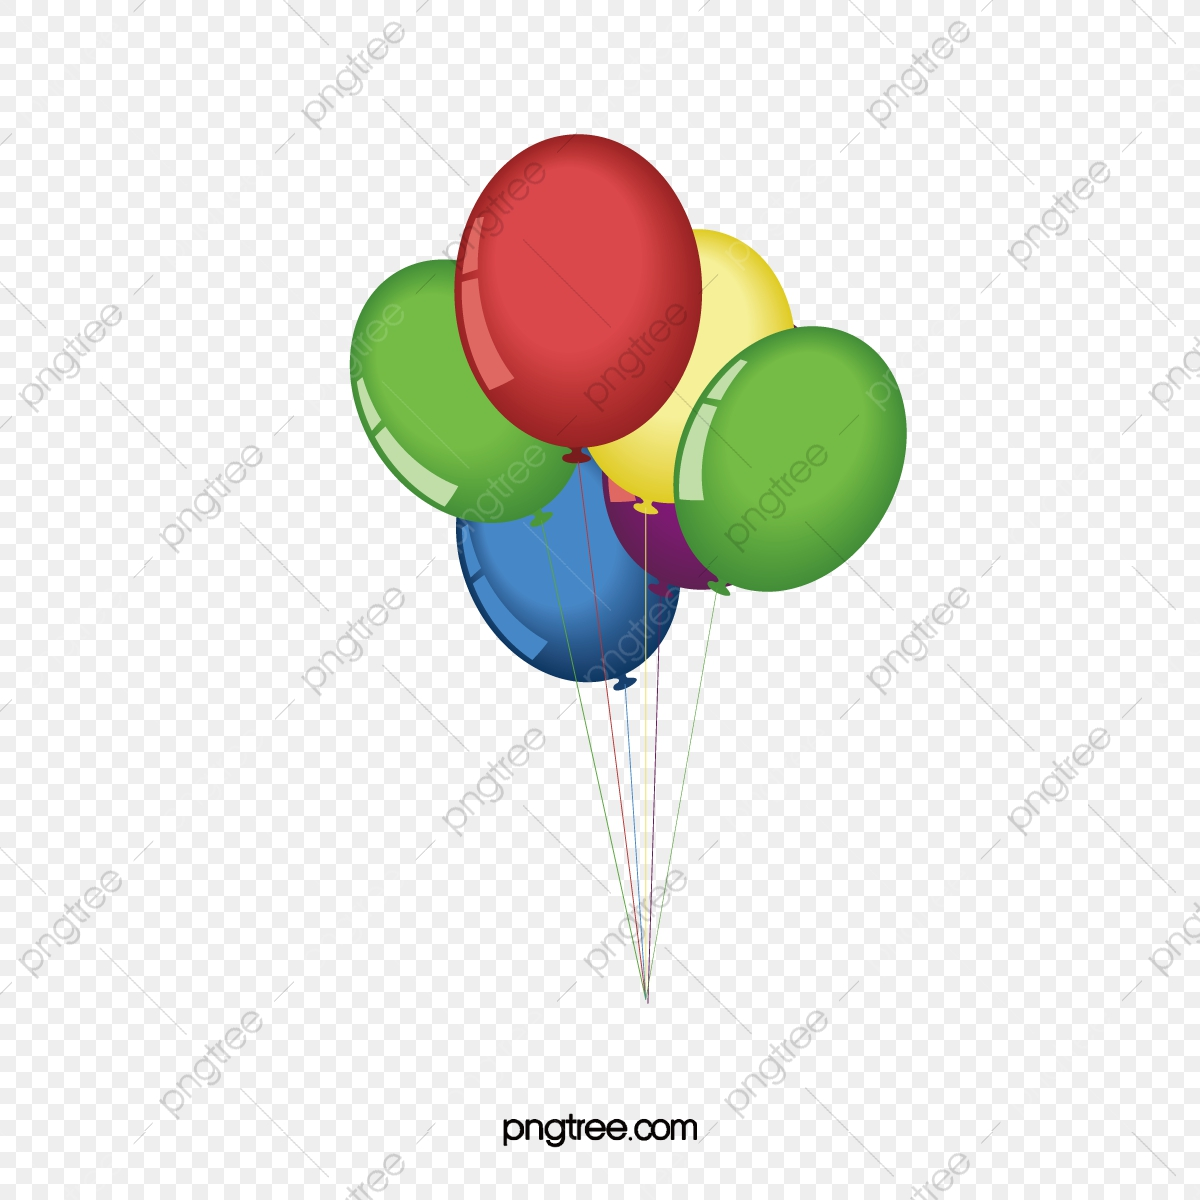 hight resolution of commercial use resource upgrade to premium plan and get license authorization upgradenow colorful cartoon balloon cartoon clipart